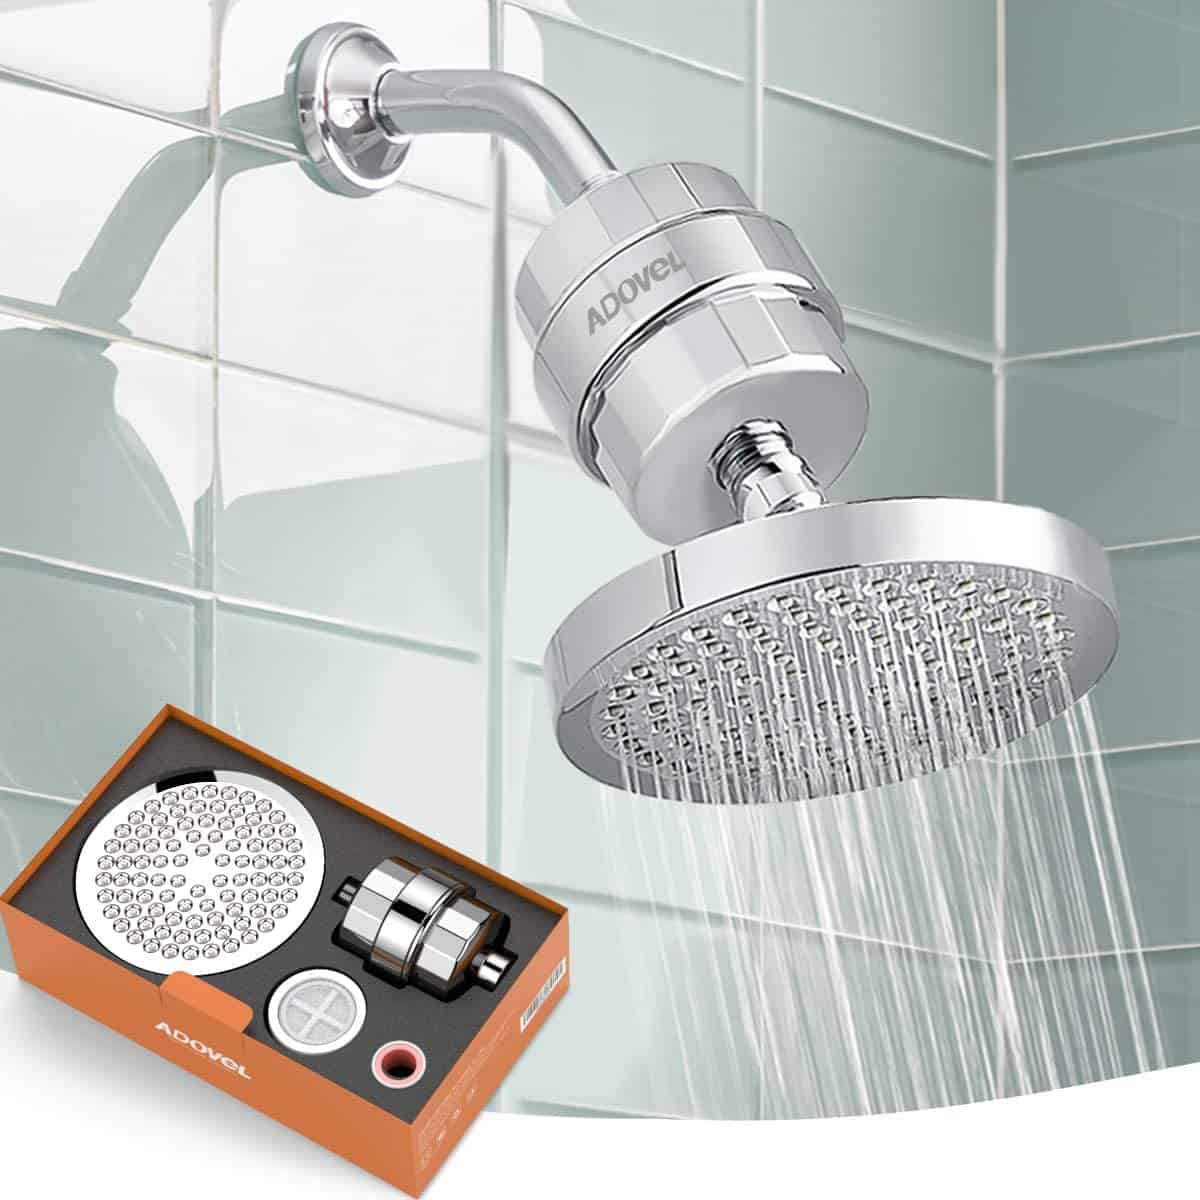 Adovel showerhead replacement